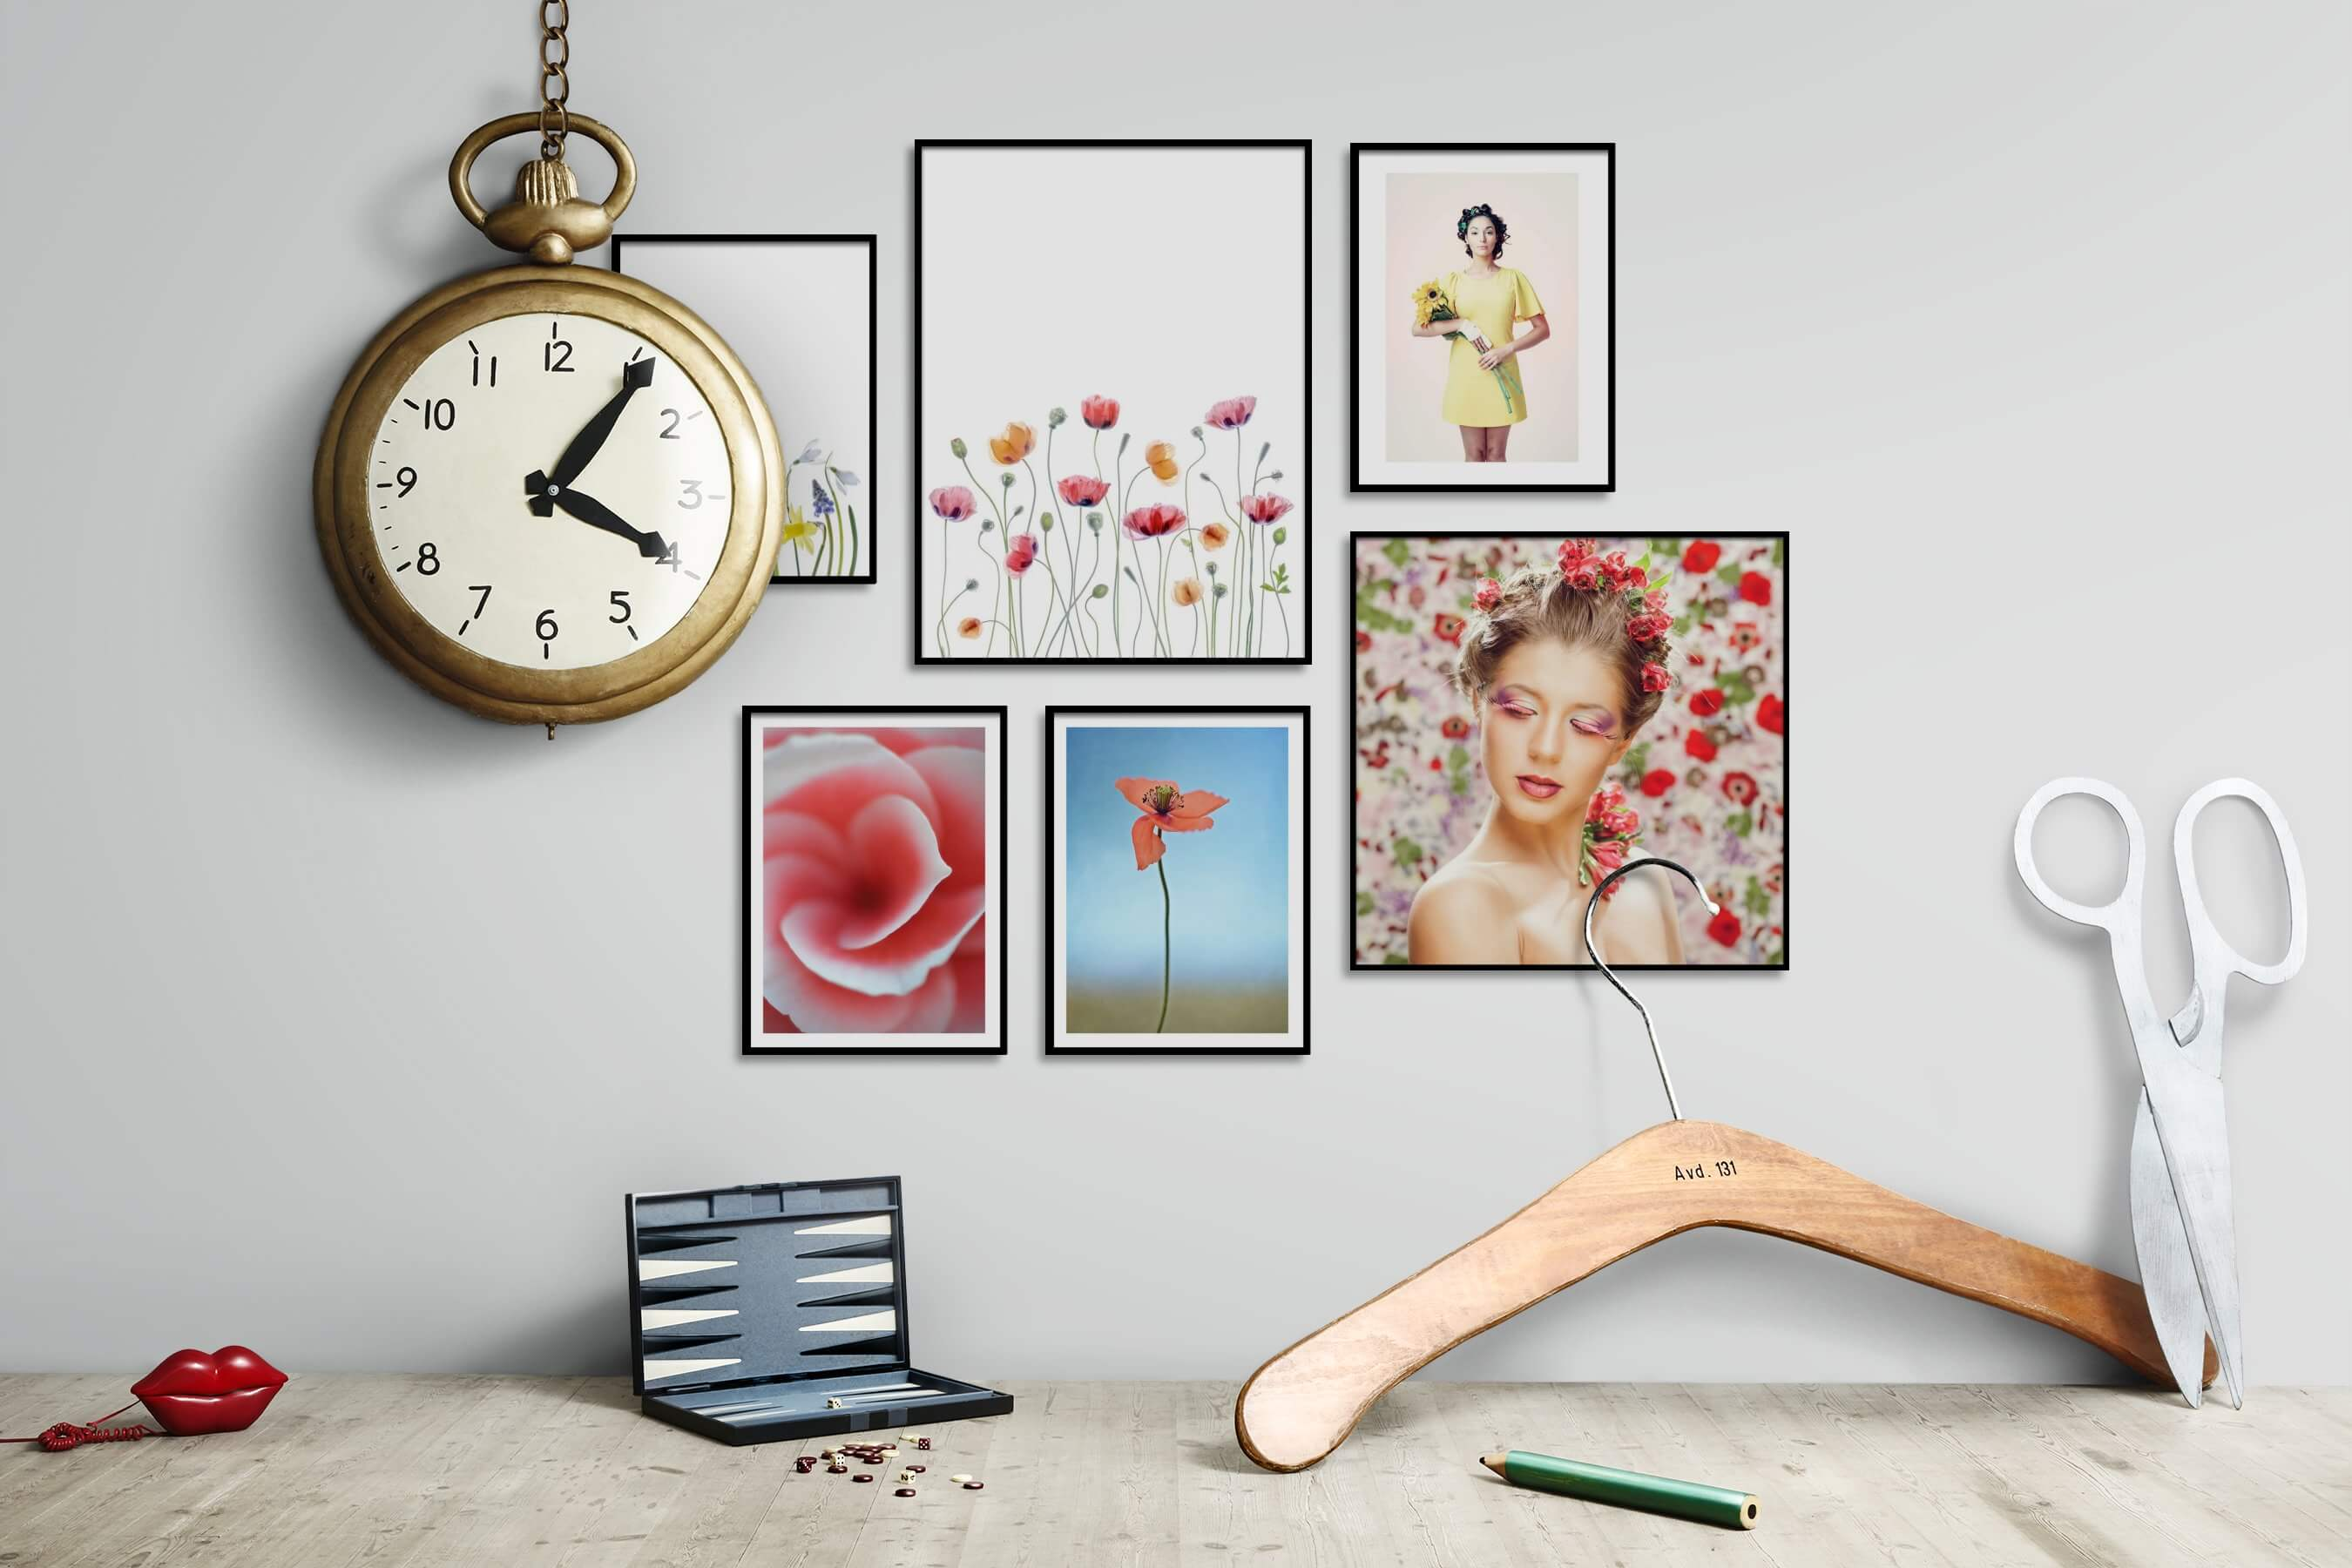 Gallery wall idea with six framed pictures arranged on a wall depicting Bright Tones, For the Minimalist, Flowers & Plants, For the Moderate, and Fashion & Beauty